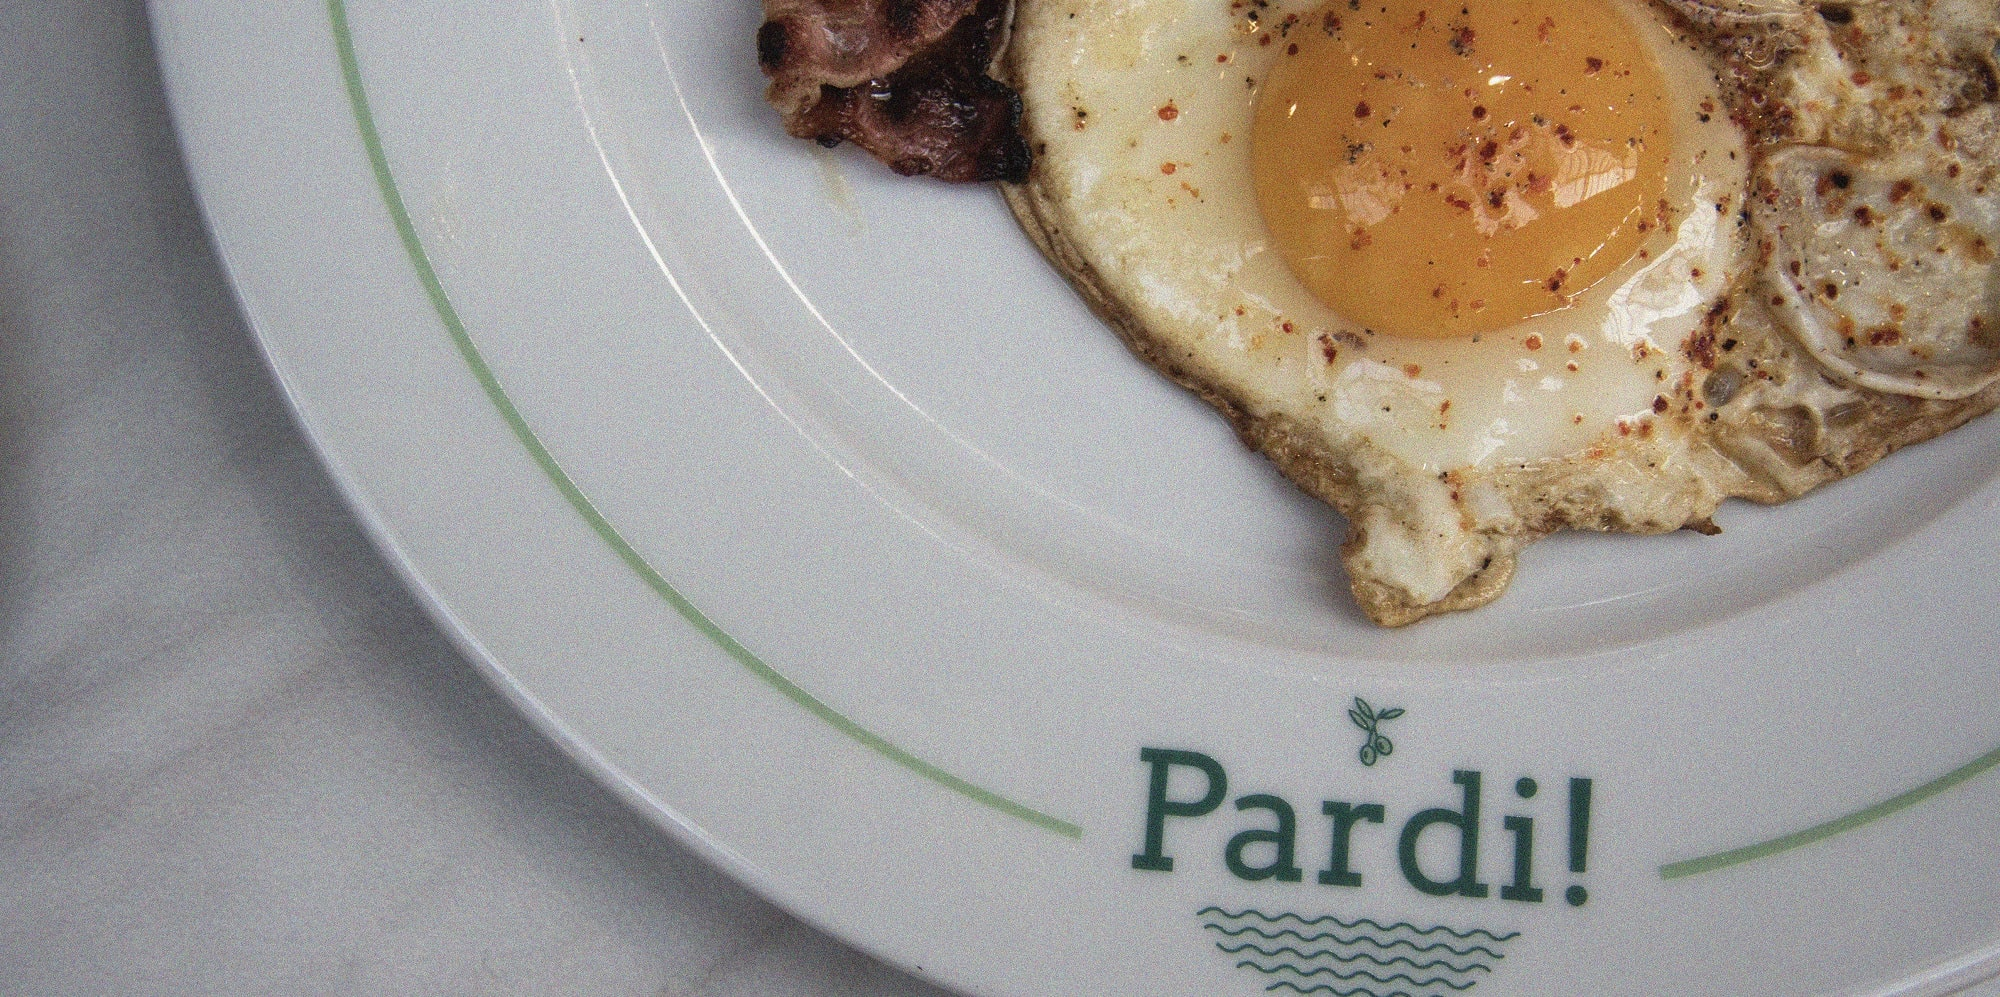 Brunch Pardi (75010 Paris)